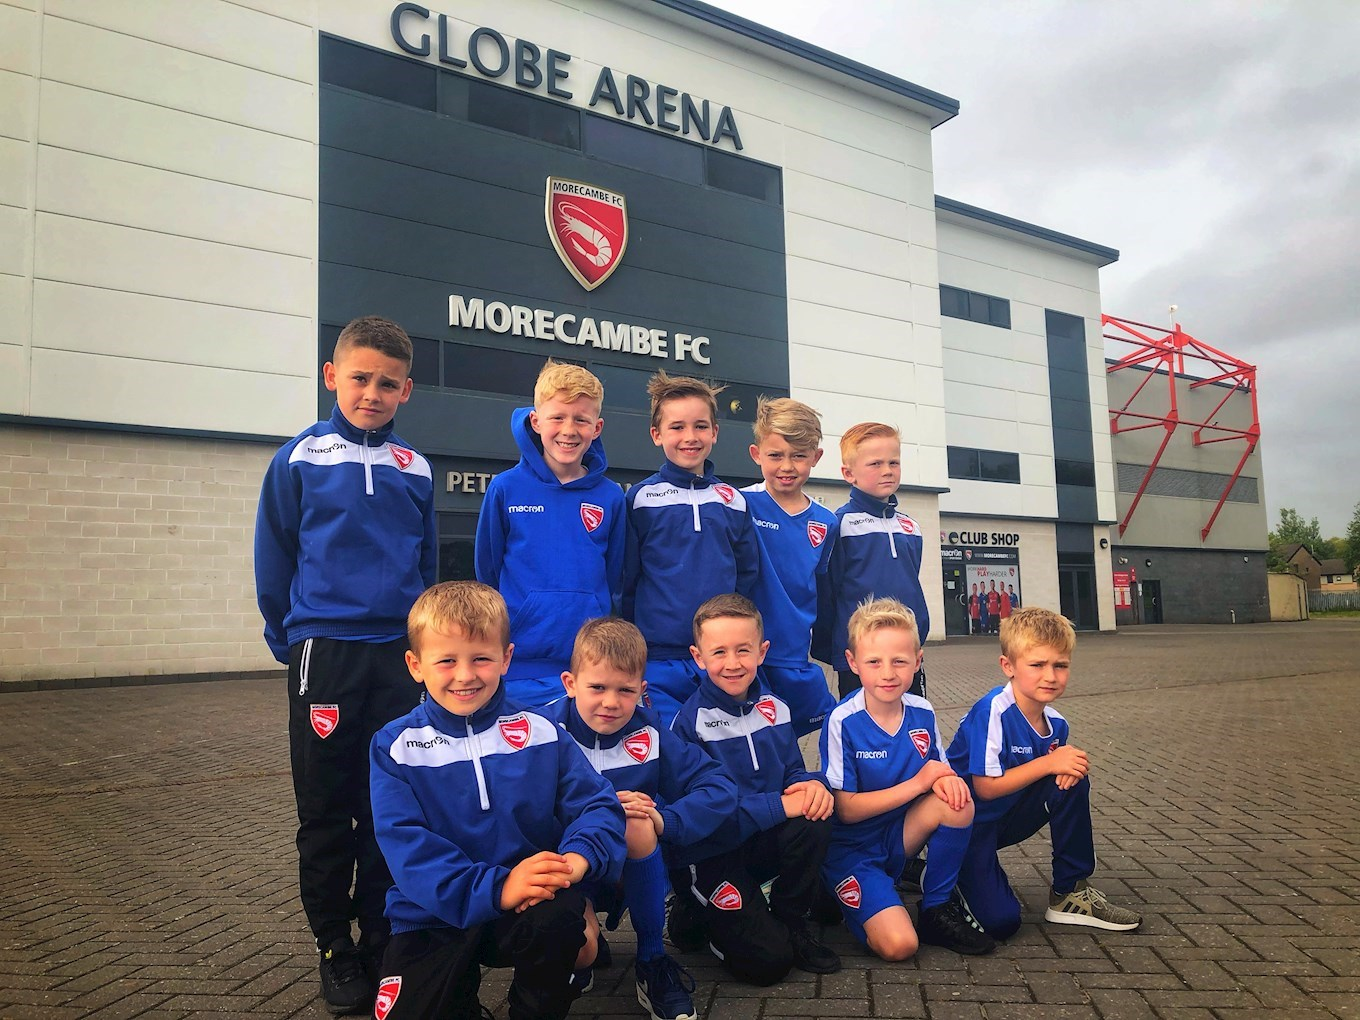 ACADEMY WELCOMES YOUNG SHRIMPS - News - Morecambe